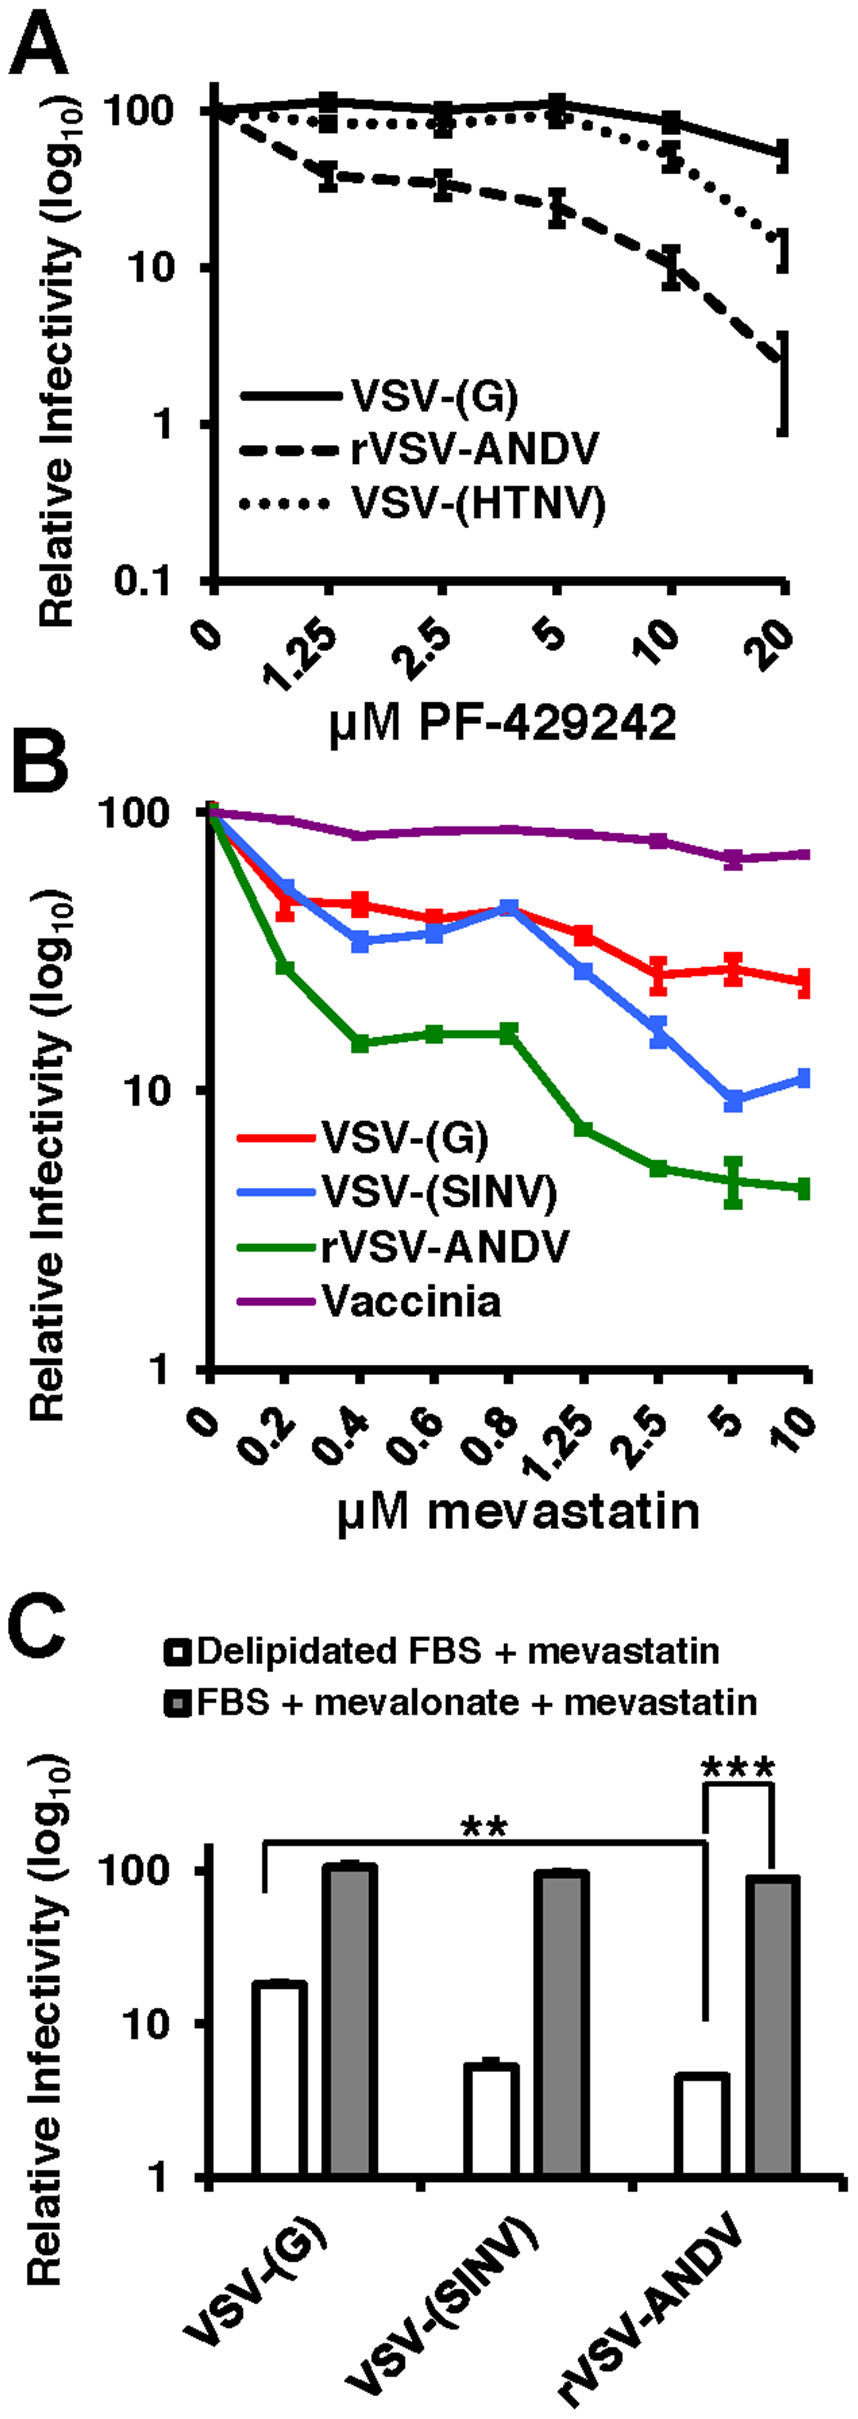 PF-429242 and mevastatin prevent efficient infection by rVSV-ANDV.